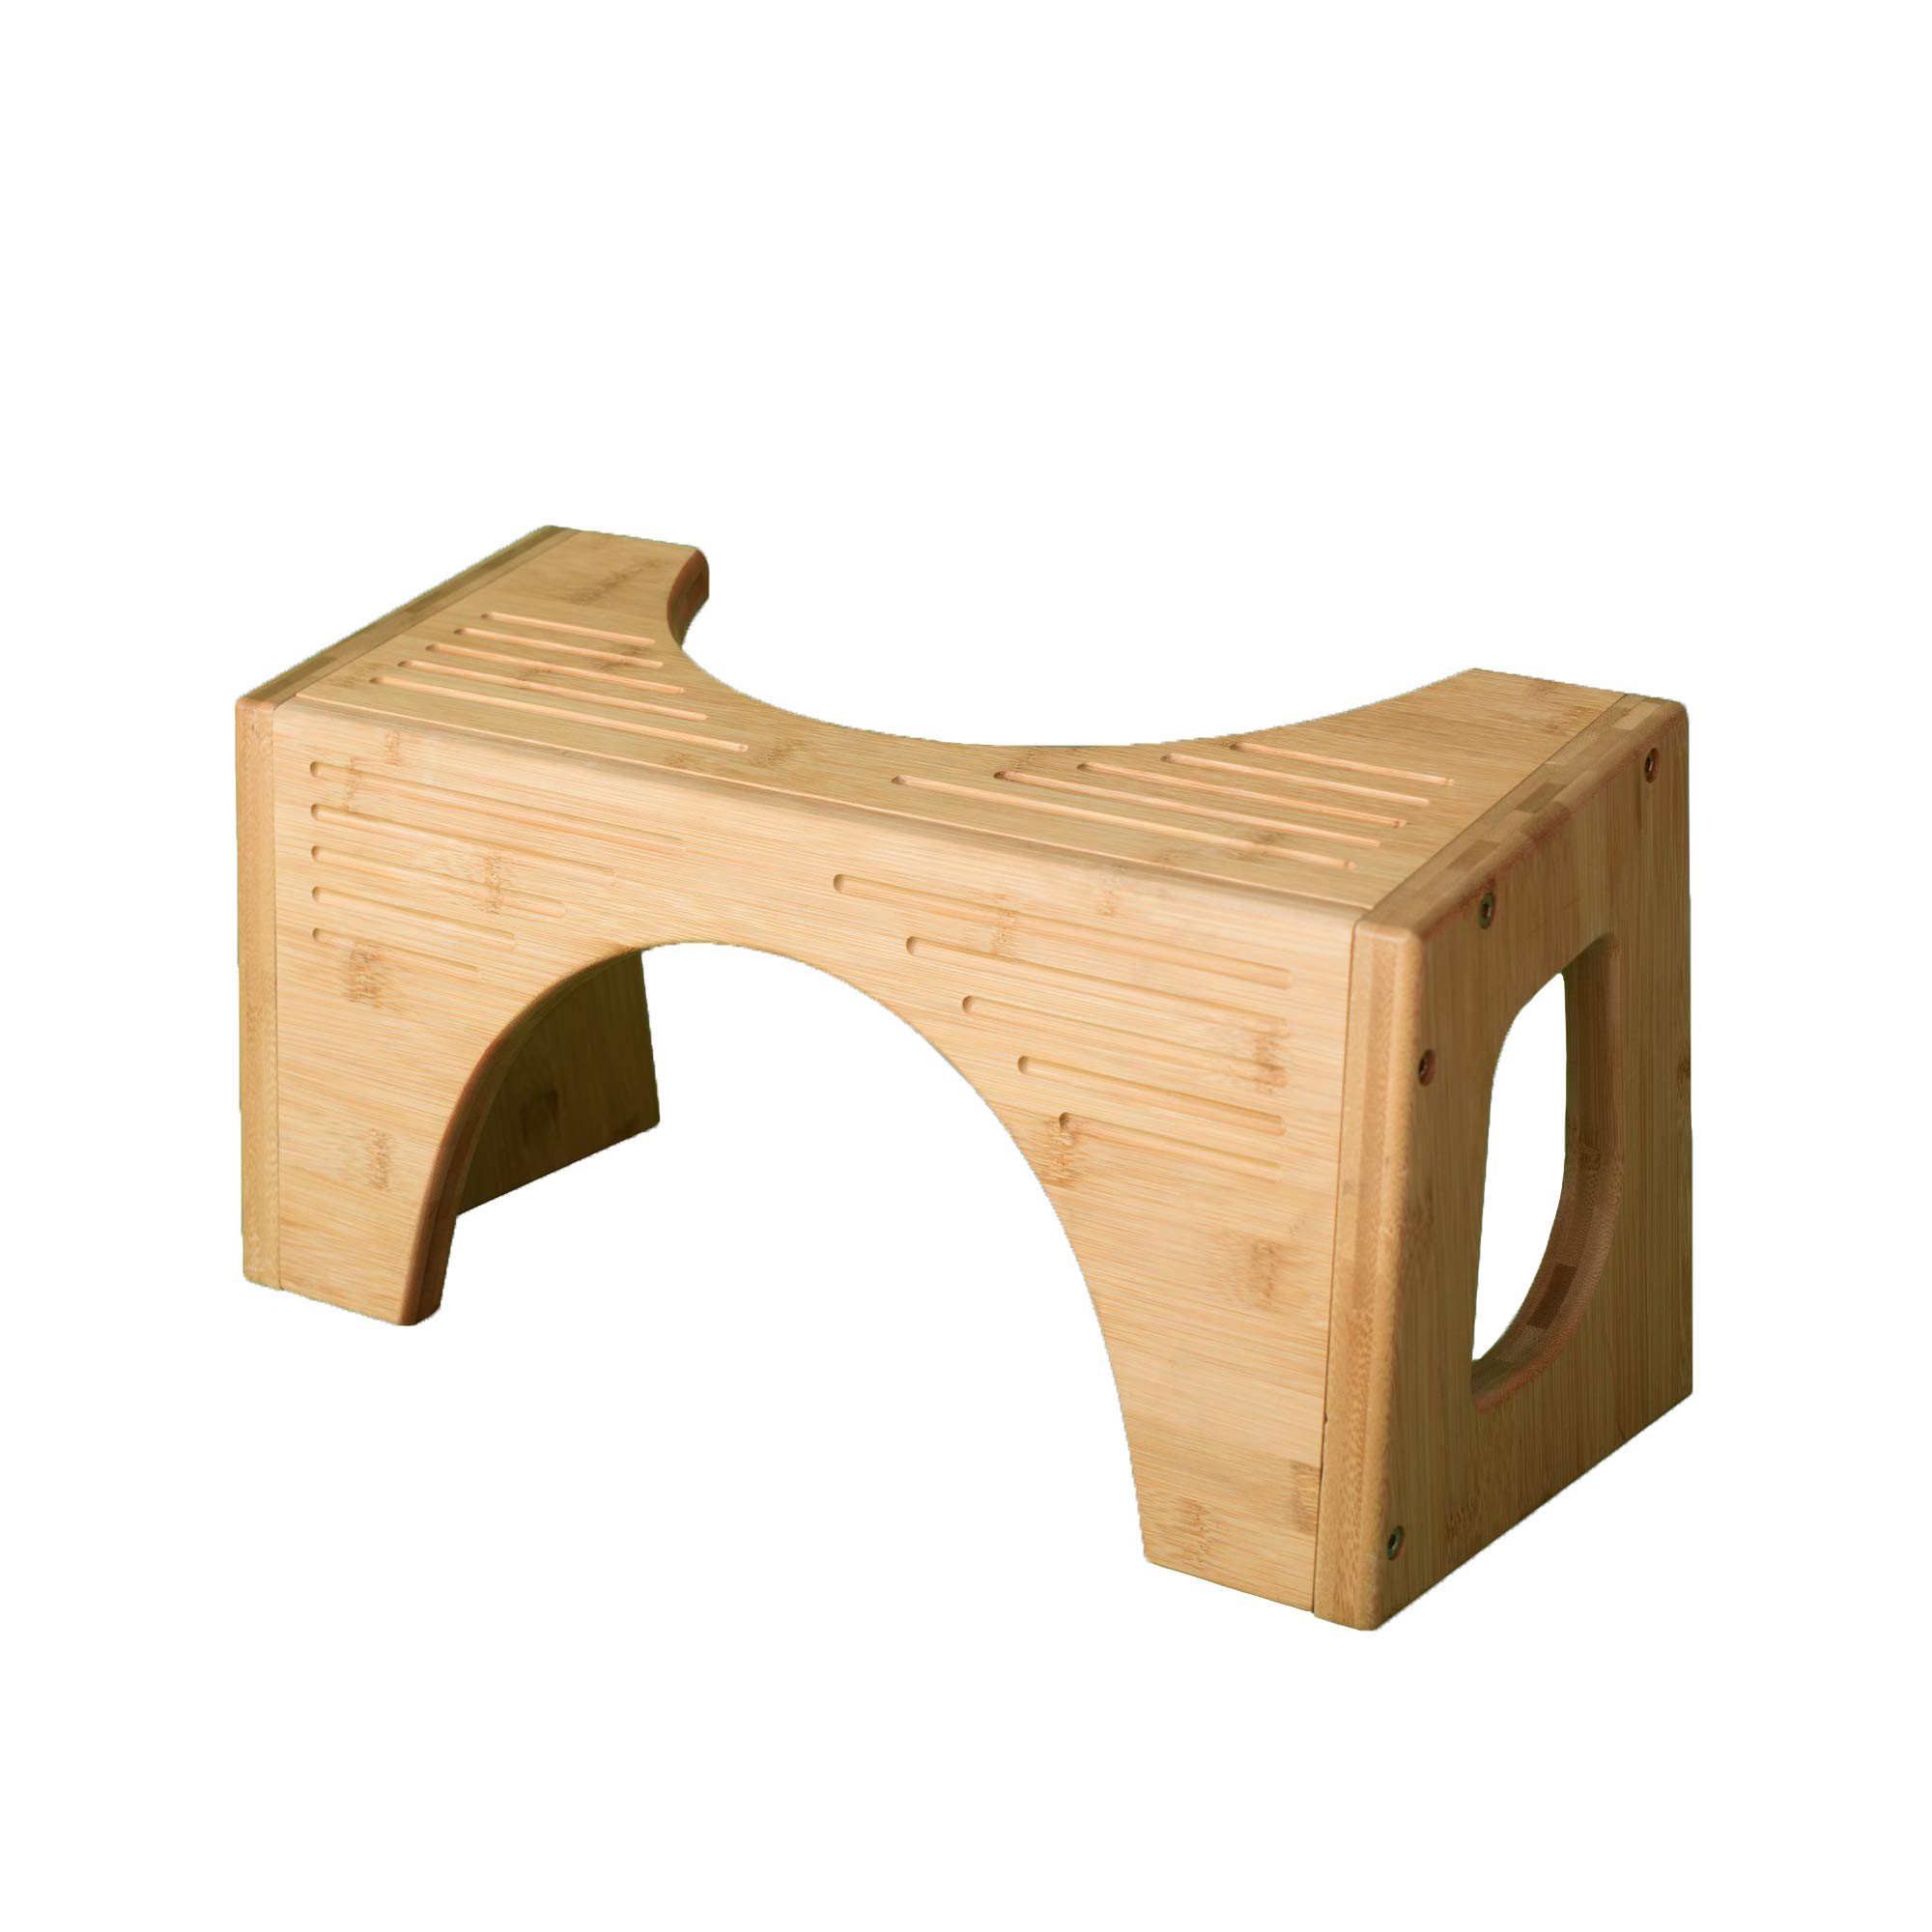 Squatty Potty The Original Toilet Stool - Bamboo FLIP, 7'' & 9'' Height, Two Sizes-in-one